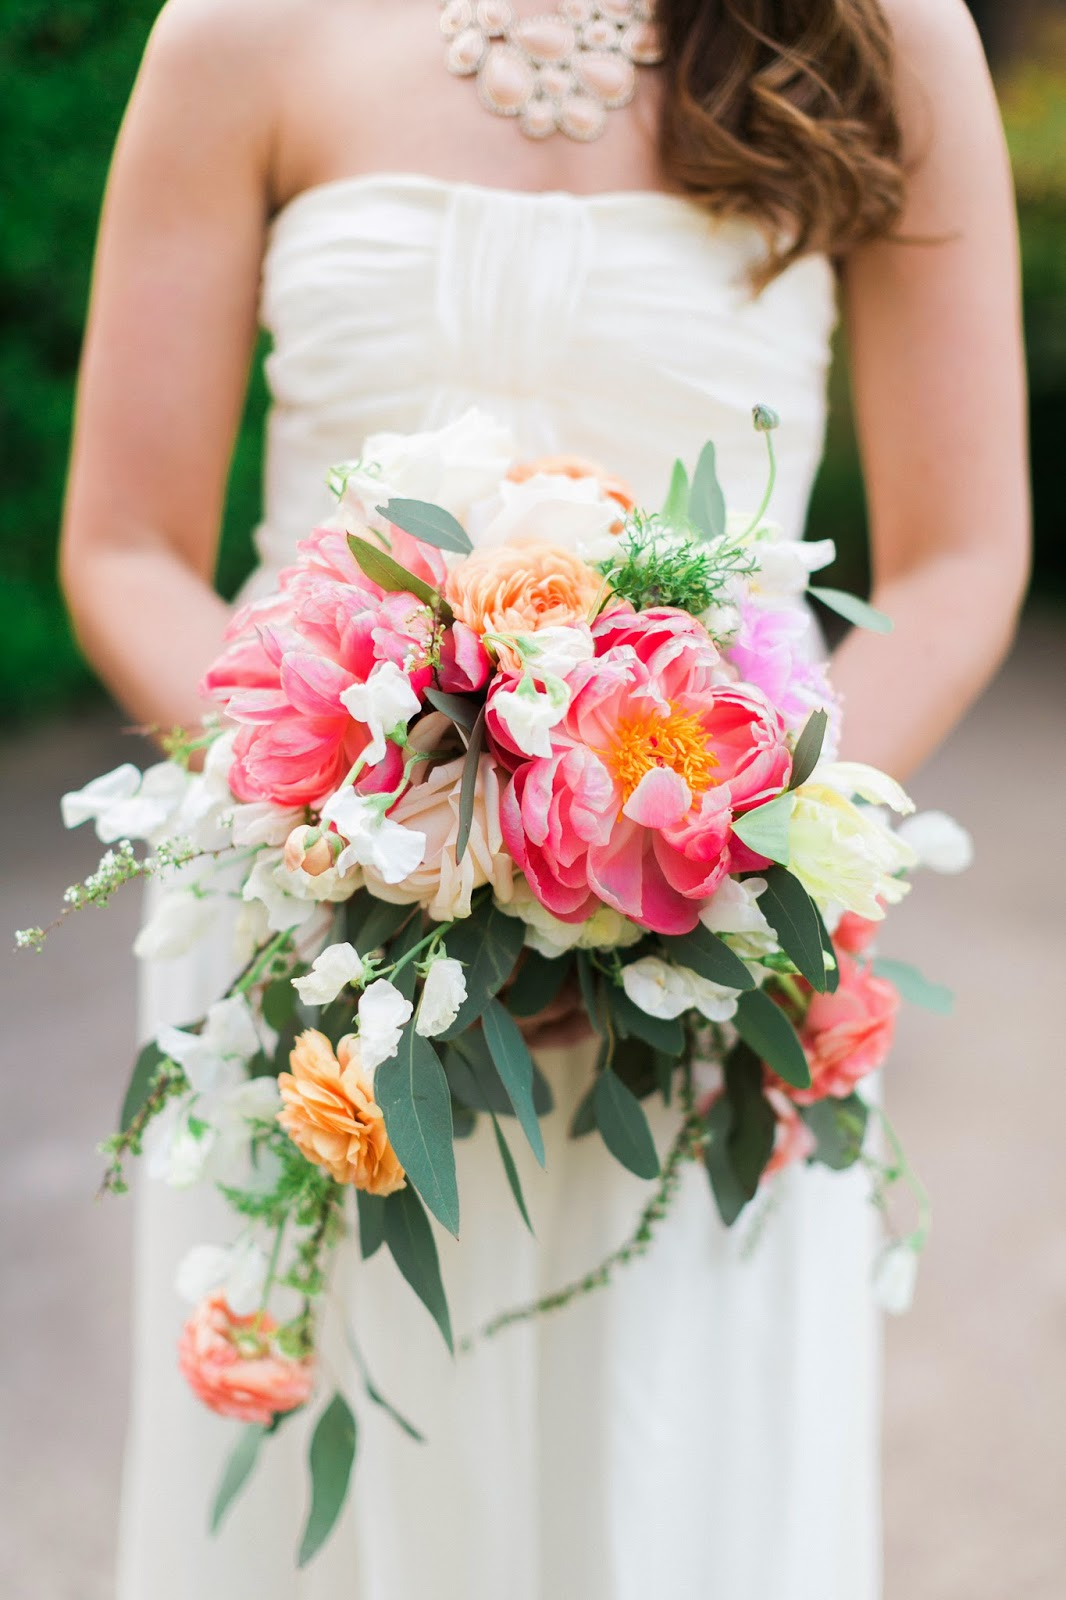 The Blooming Bride, DFW, Fort Worth, Texas, Wedding Flowers, natural wedding, bouquet, sanford house